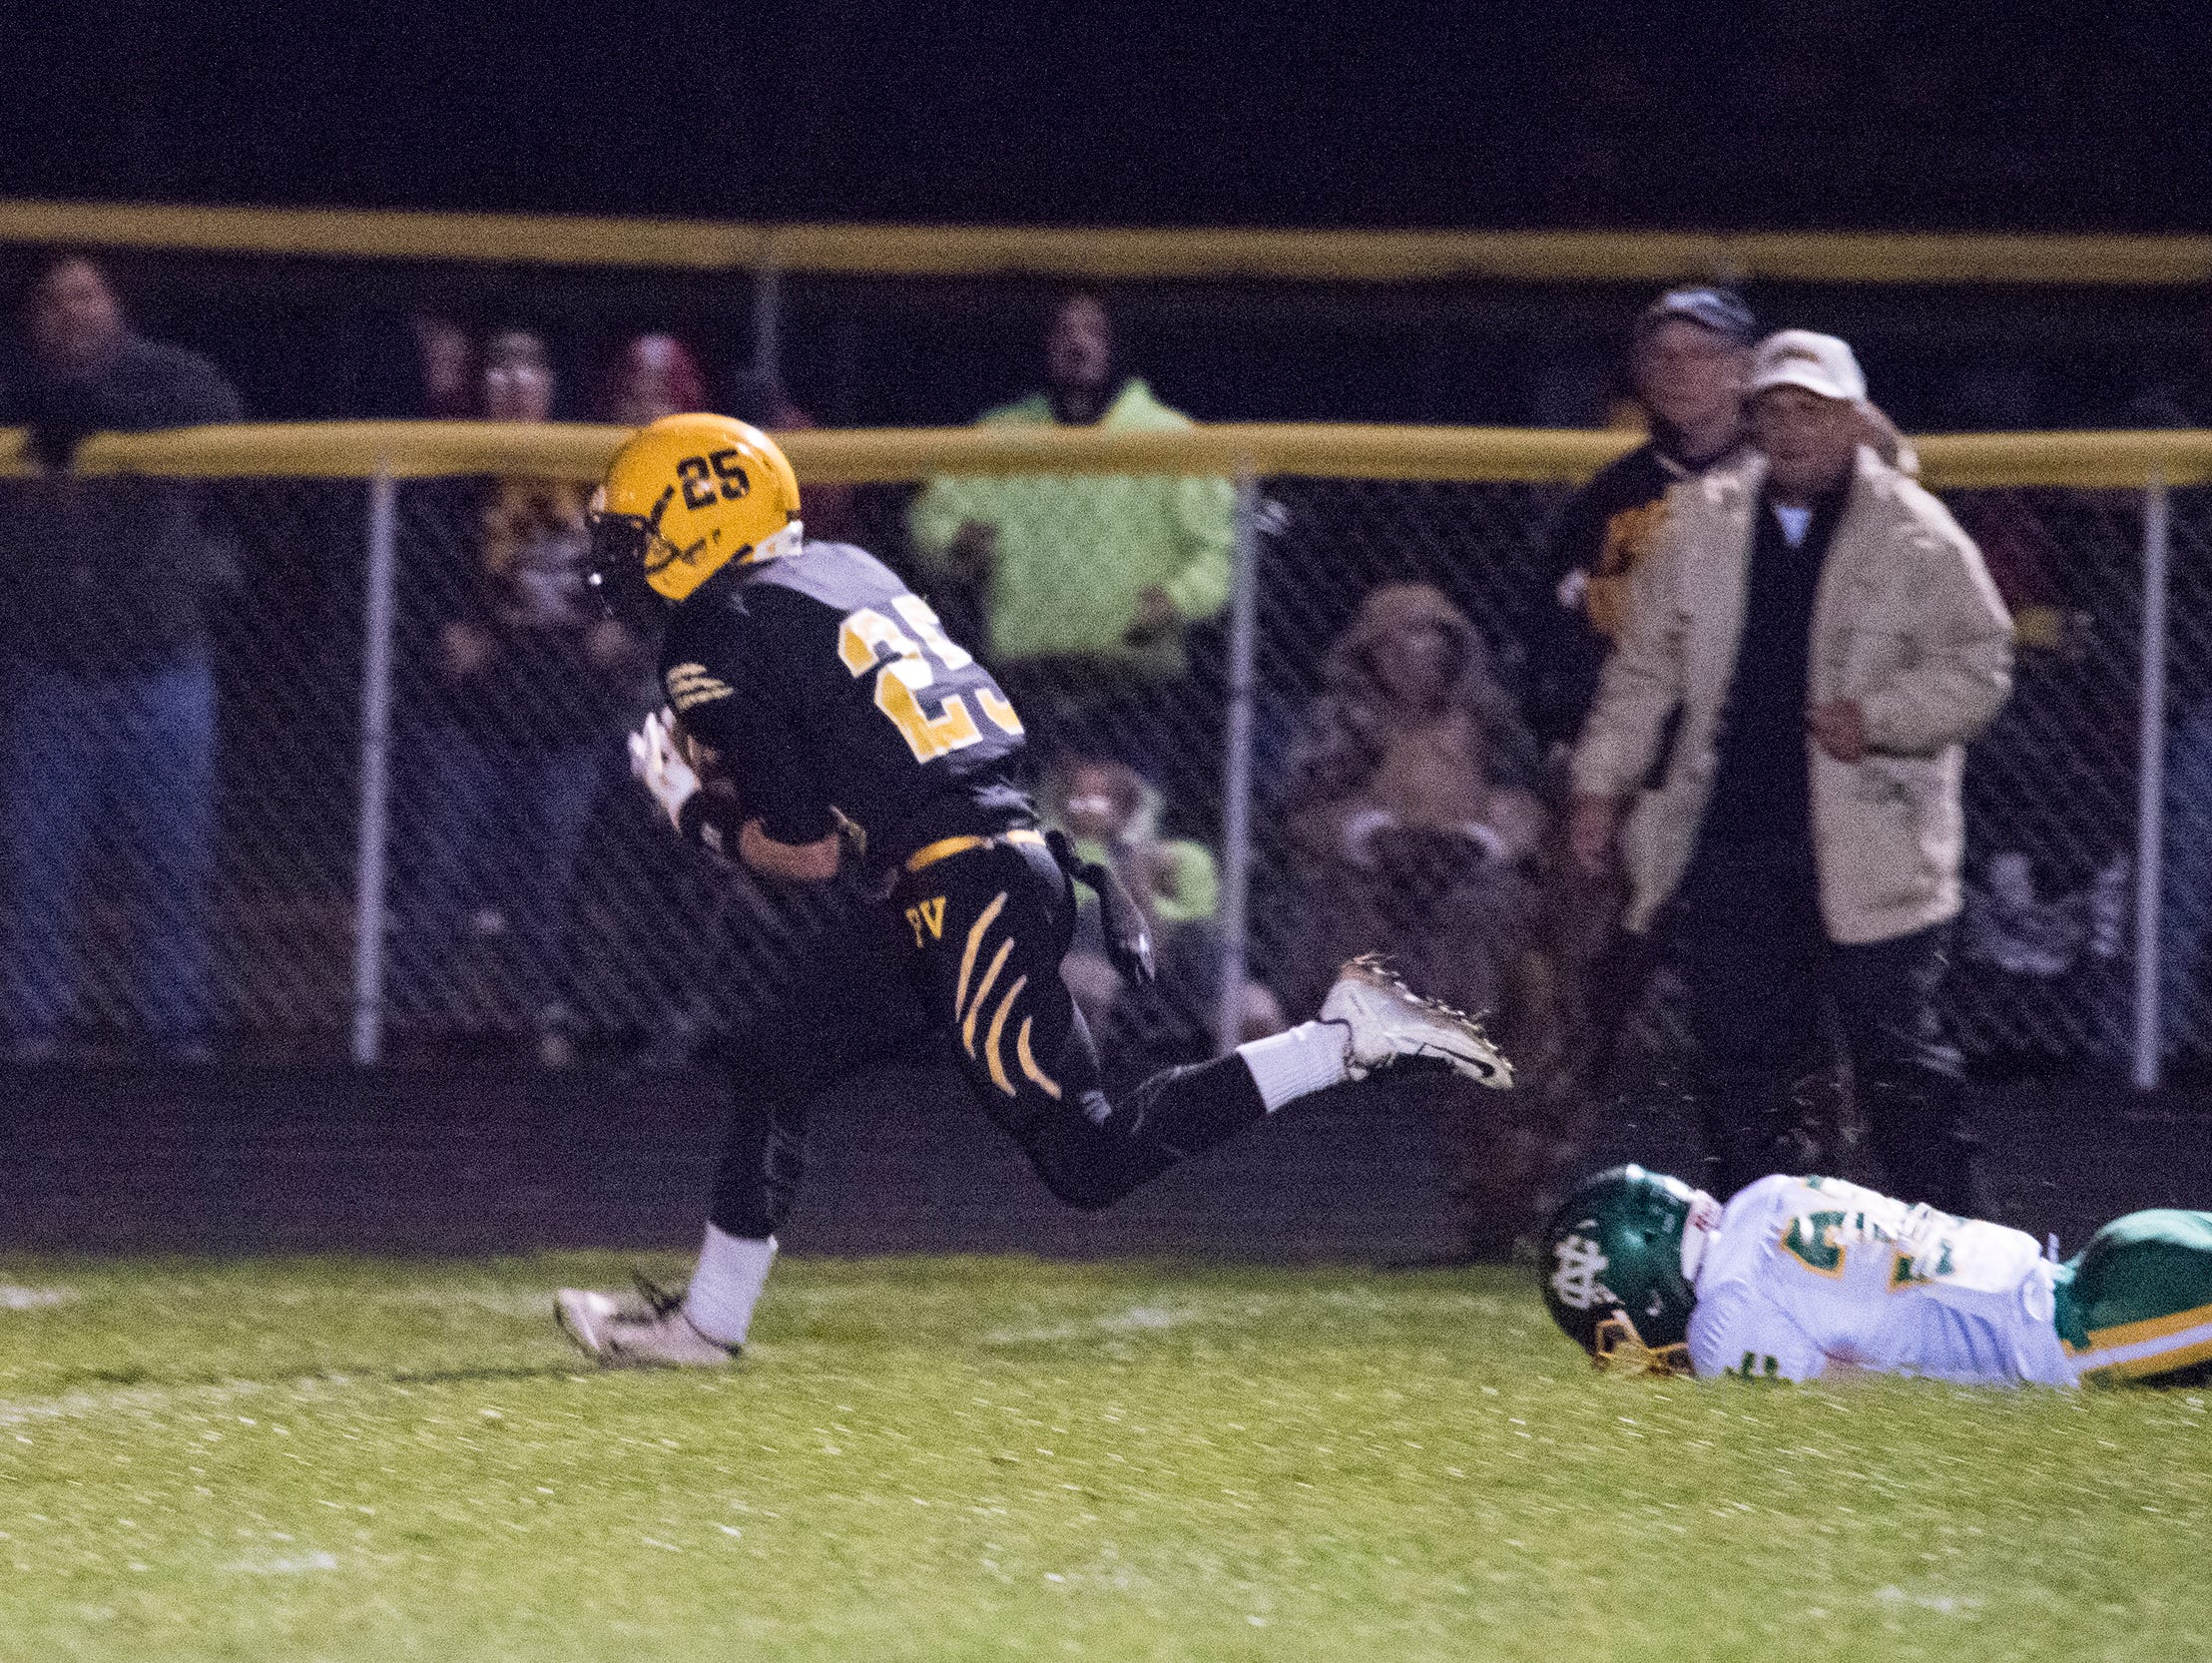 Paint Valley senior Tony Hatfield runs the ball in for a touchdown after making a catch during the second quarter Saturday evening.